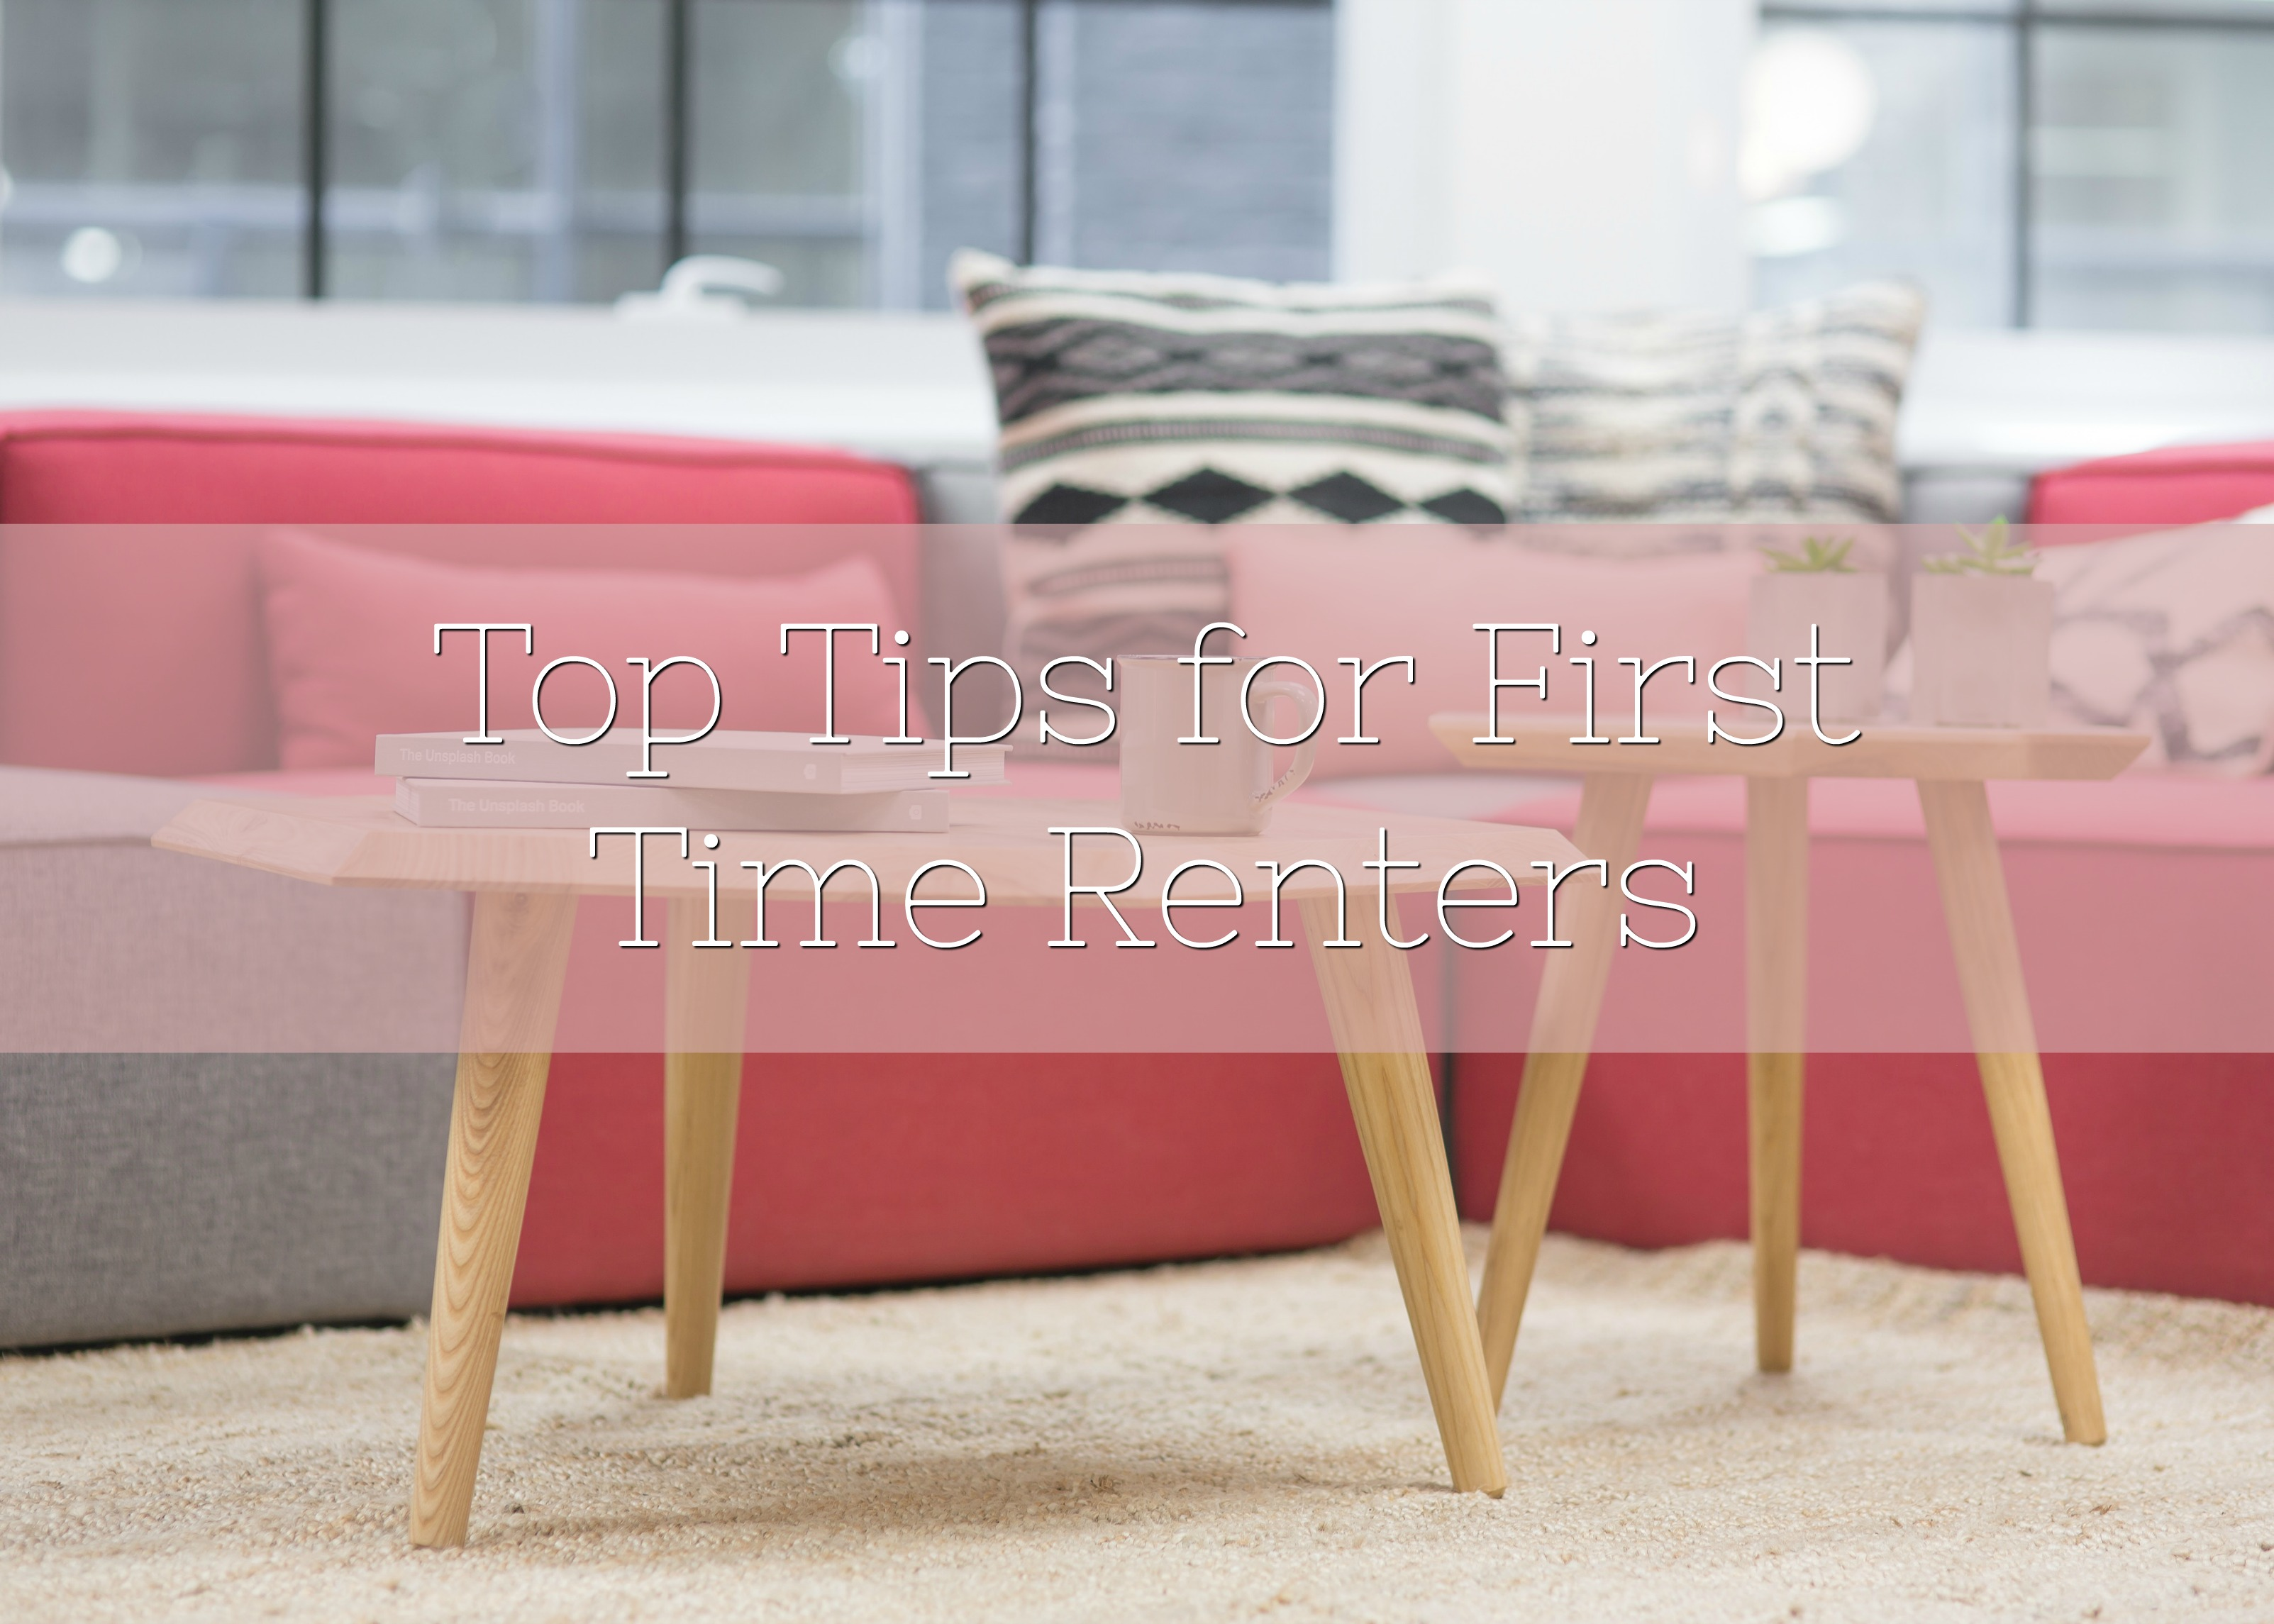 Top Tips for First Time Renters